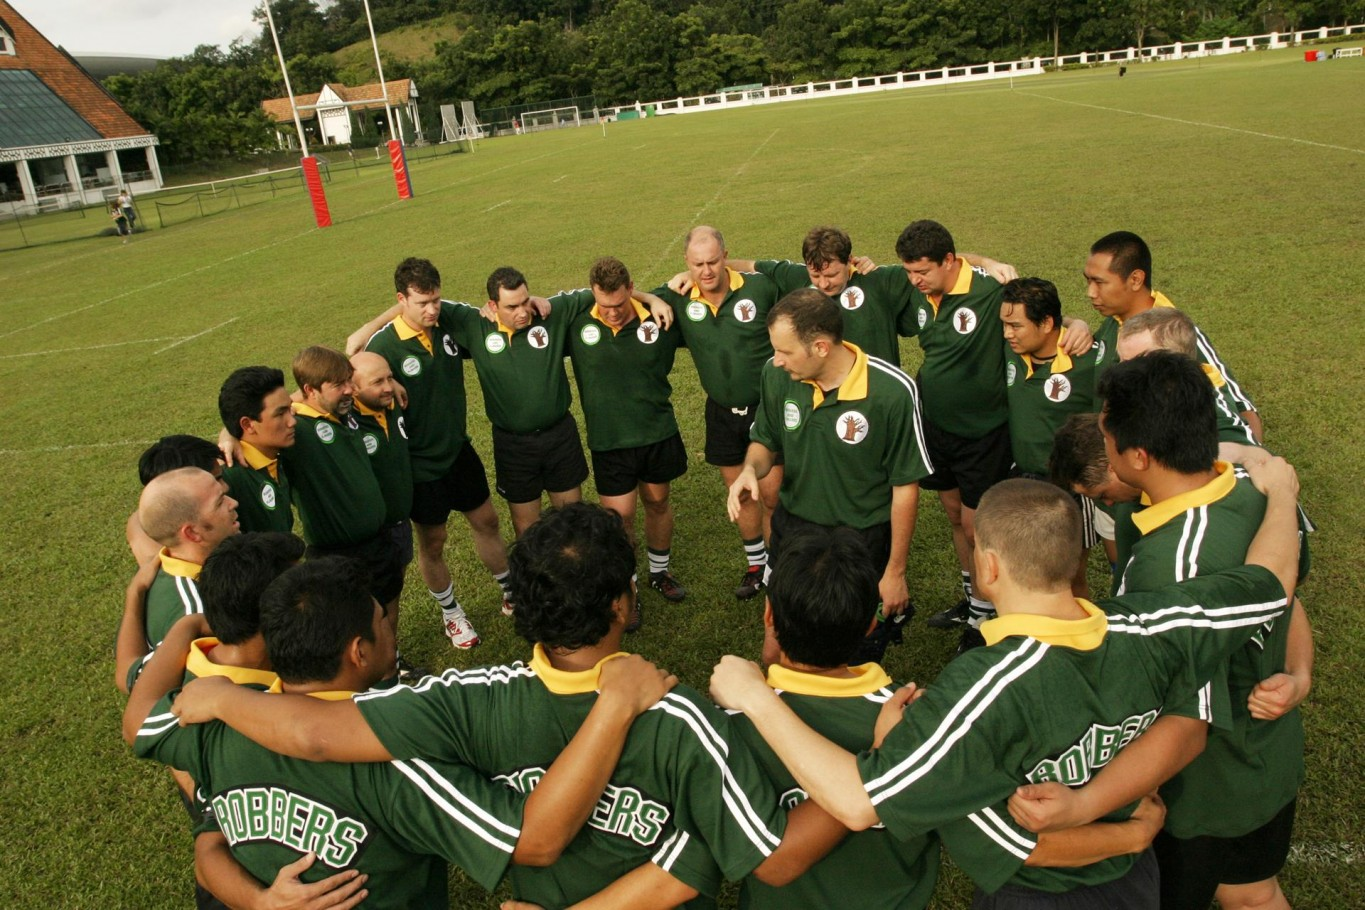 Pep talk rugby